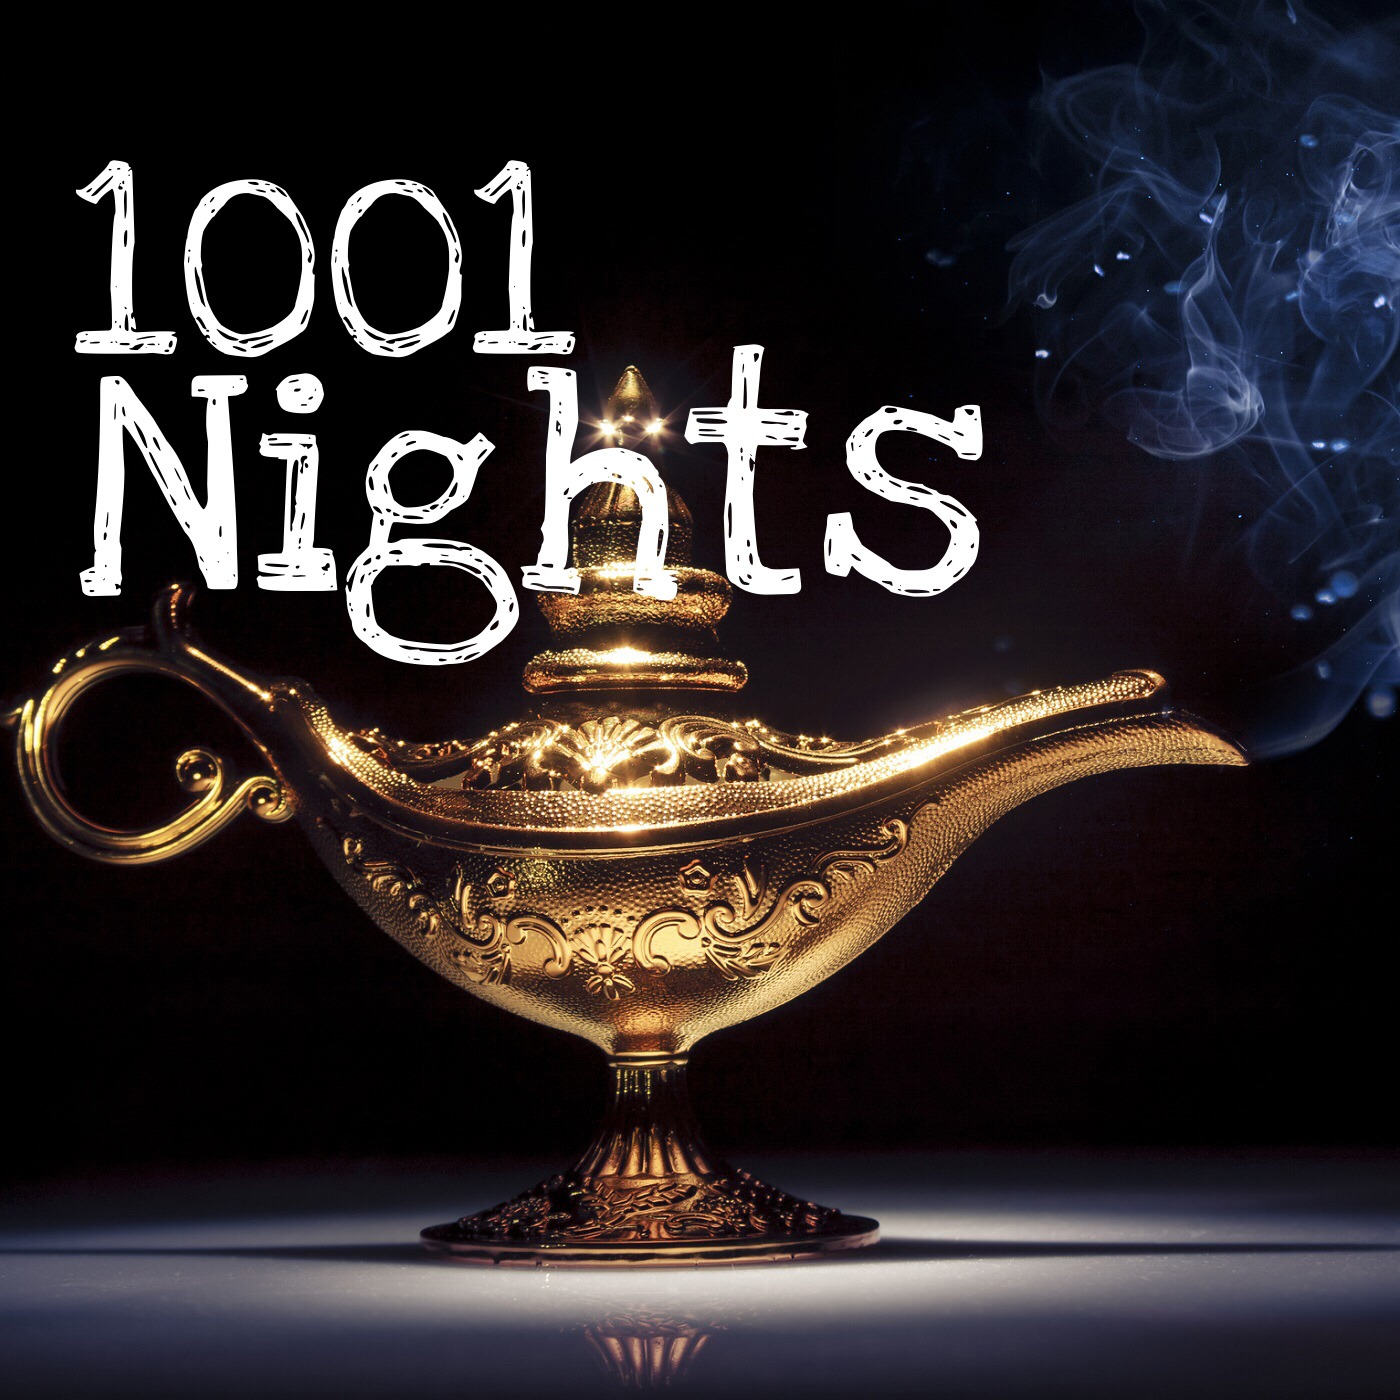 1001 Nights Ep. 2 - The Merchant and the Genie